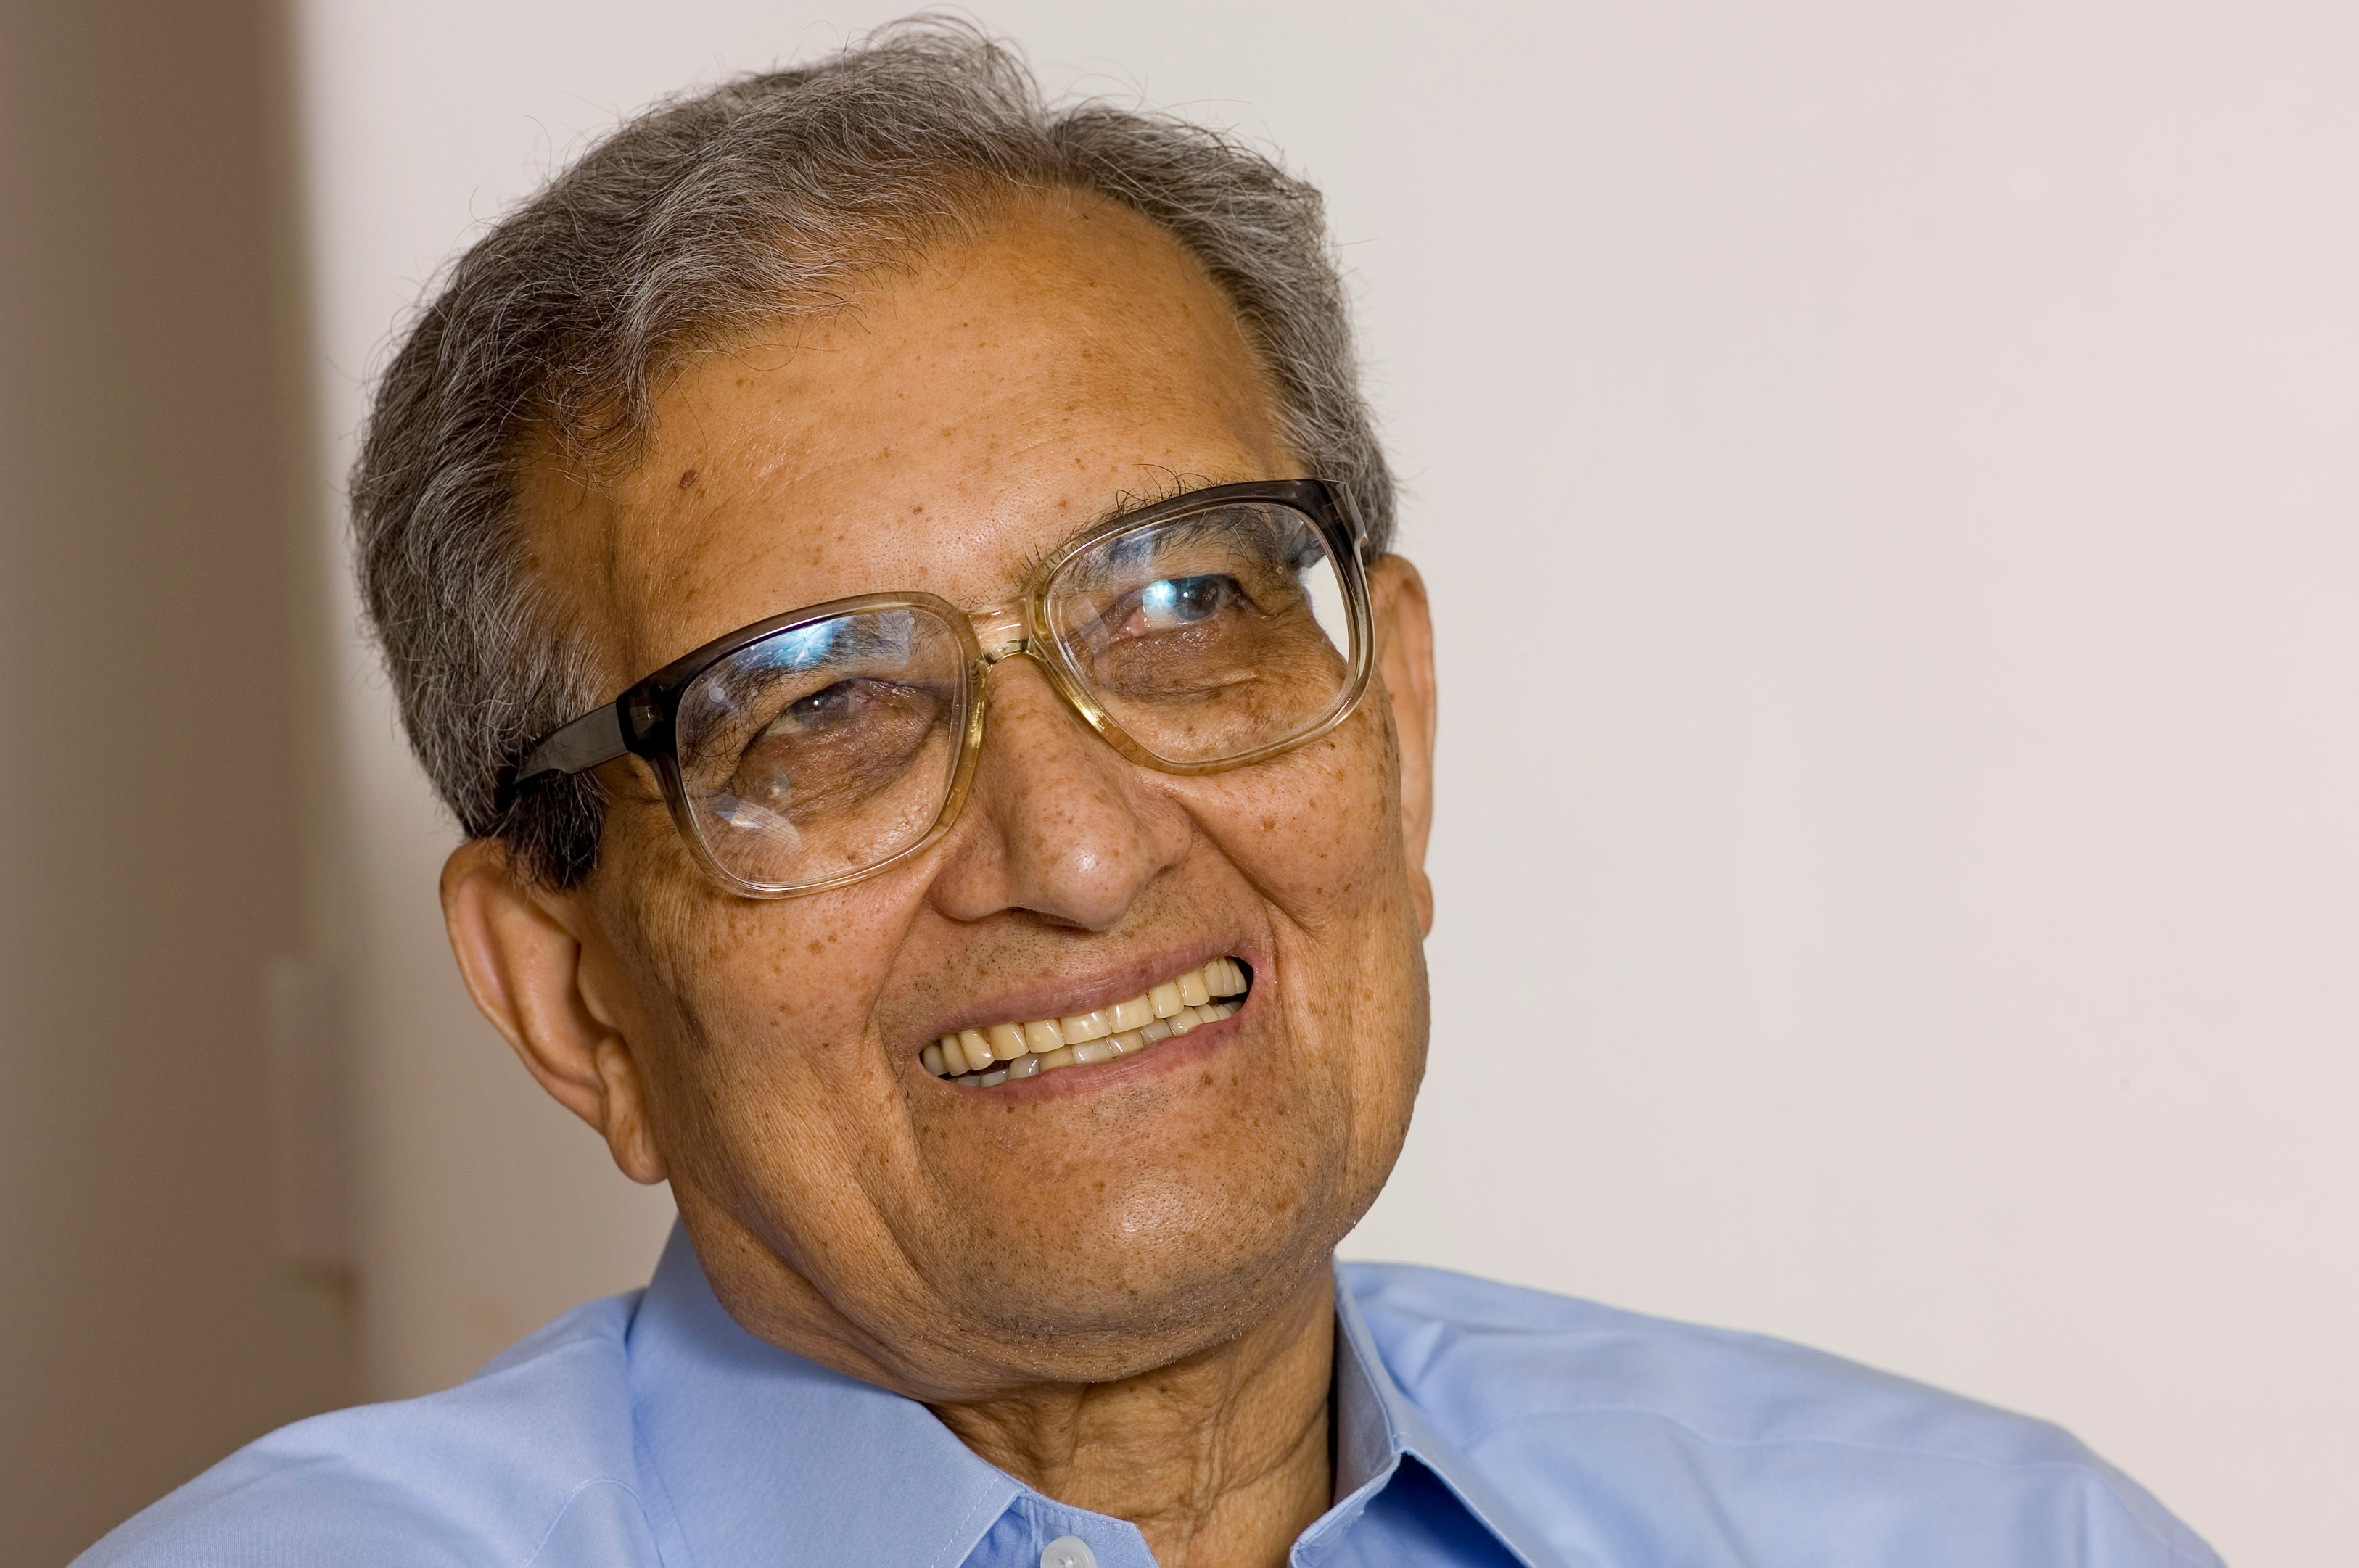 UP elections 2017: PM Modi takes a dig at economist Amartya Sen